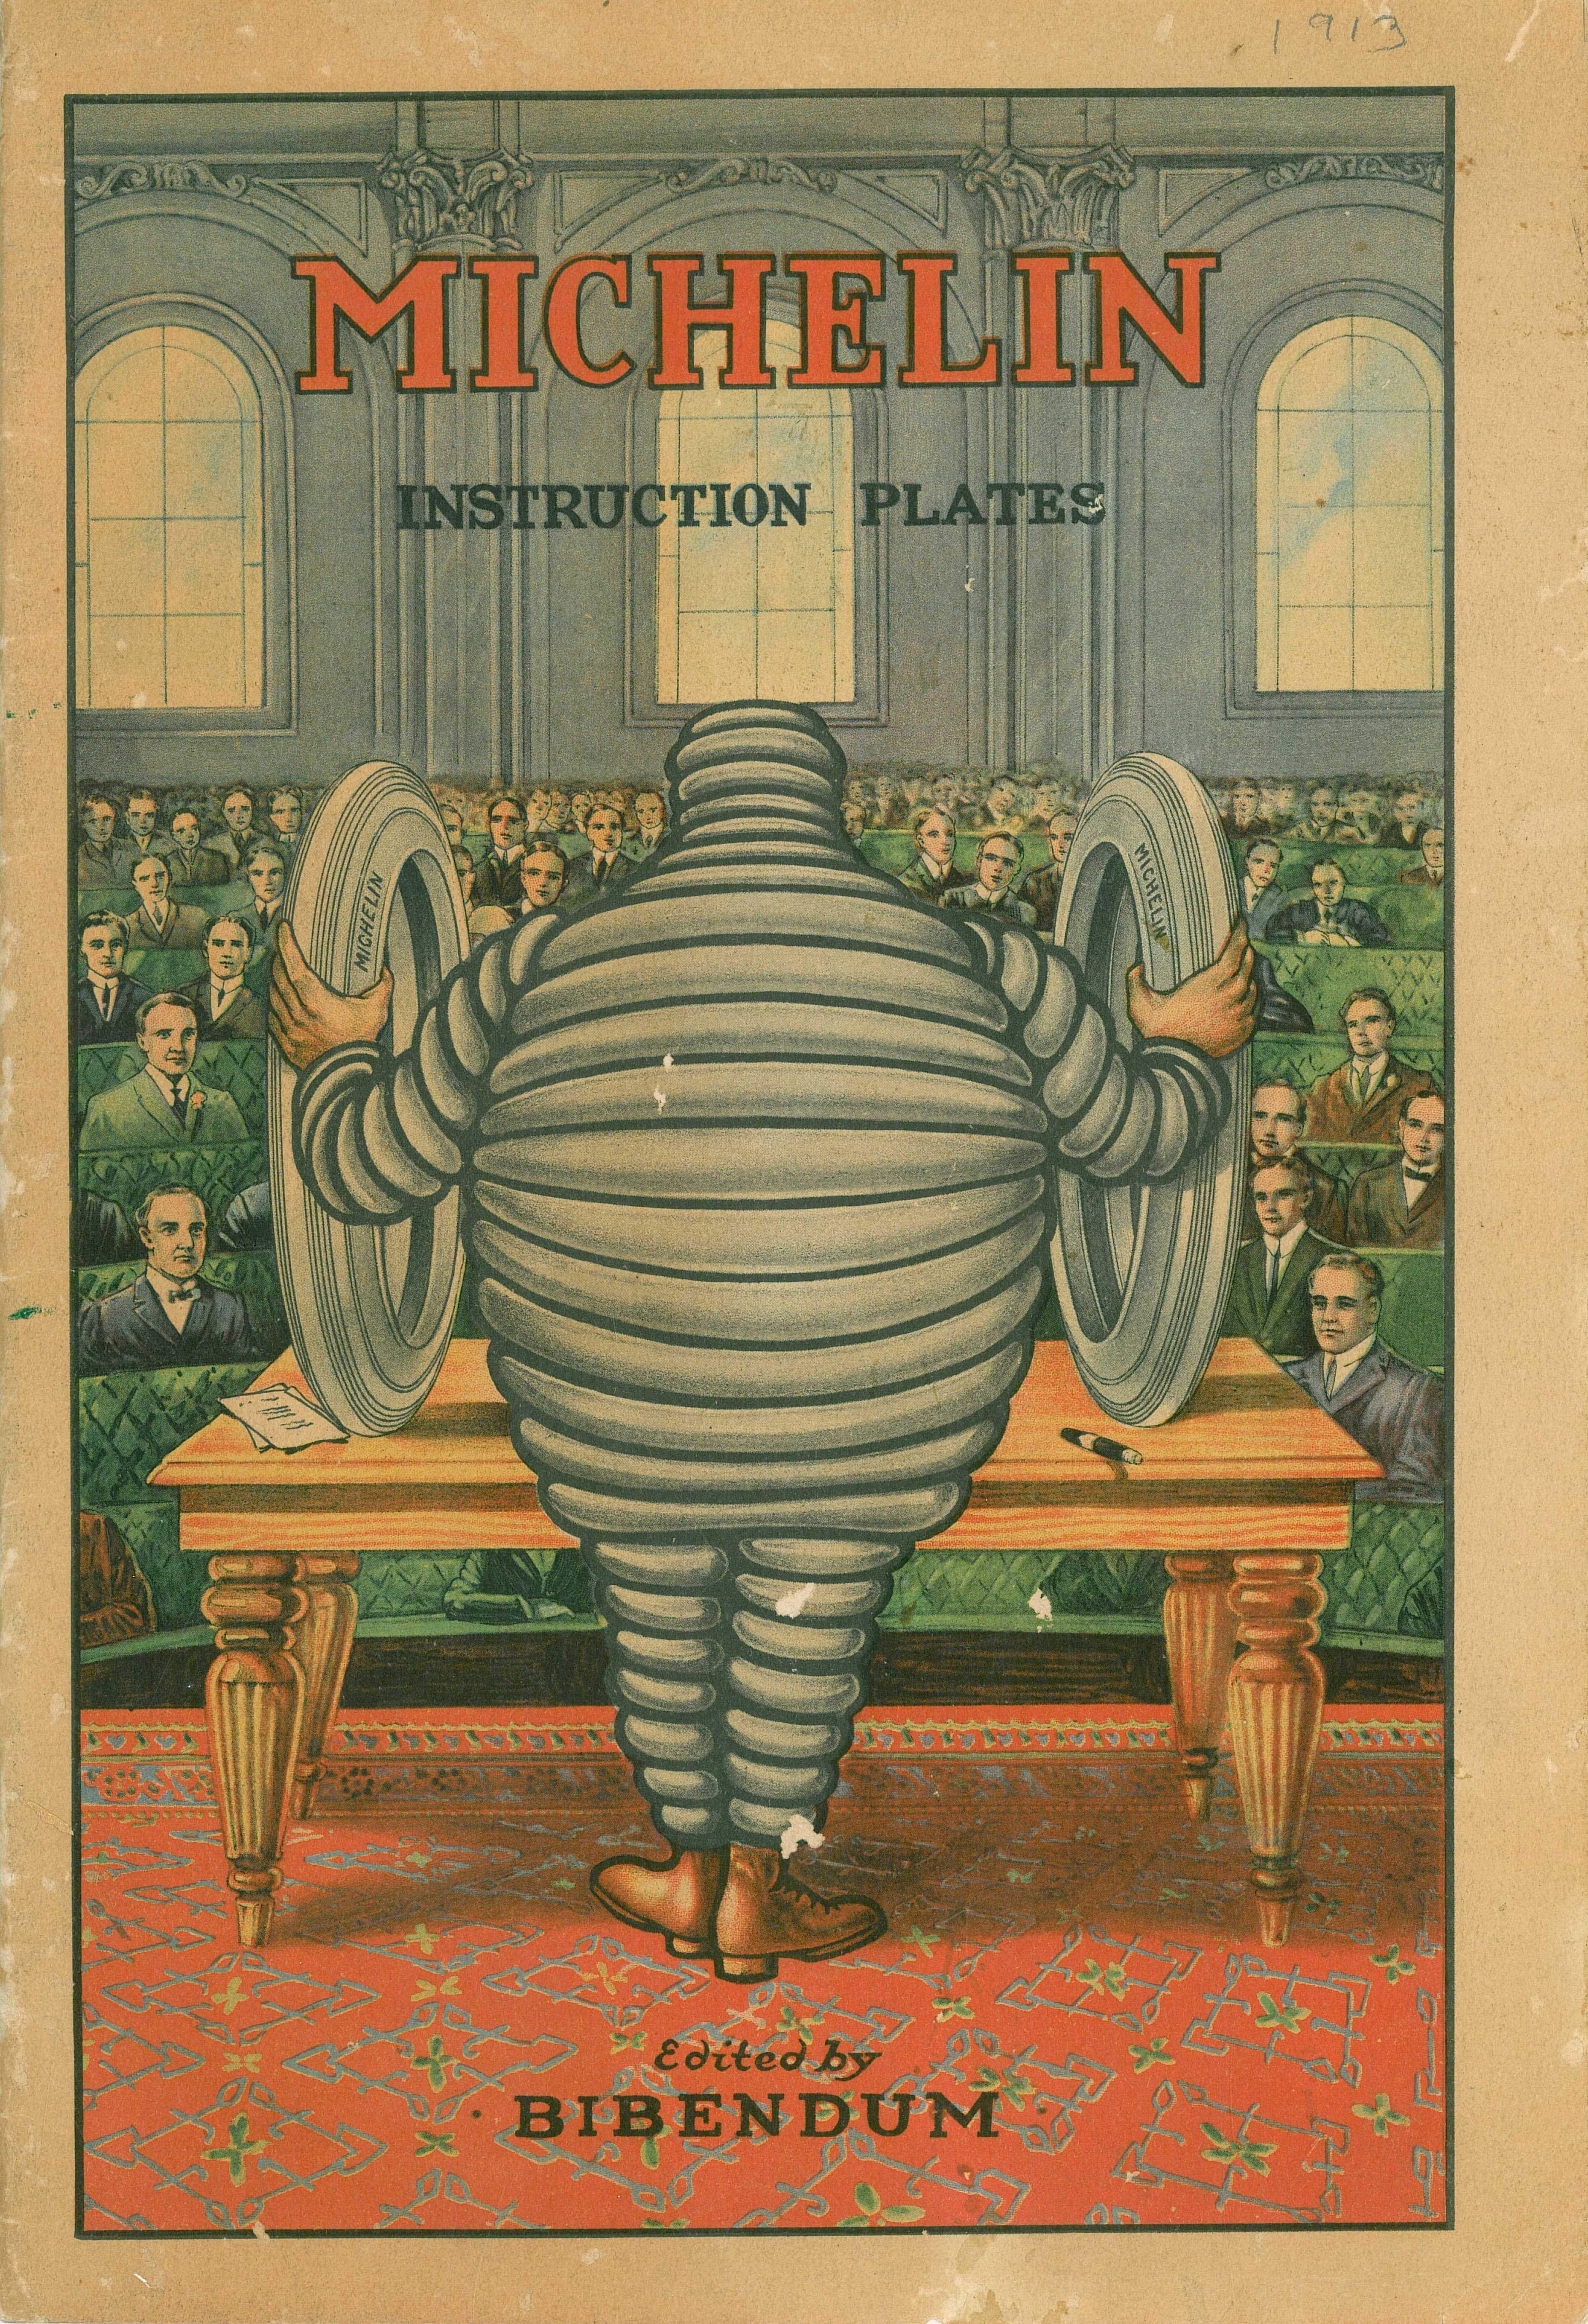 Michelin Instruction Plates (1913)